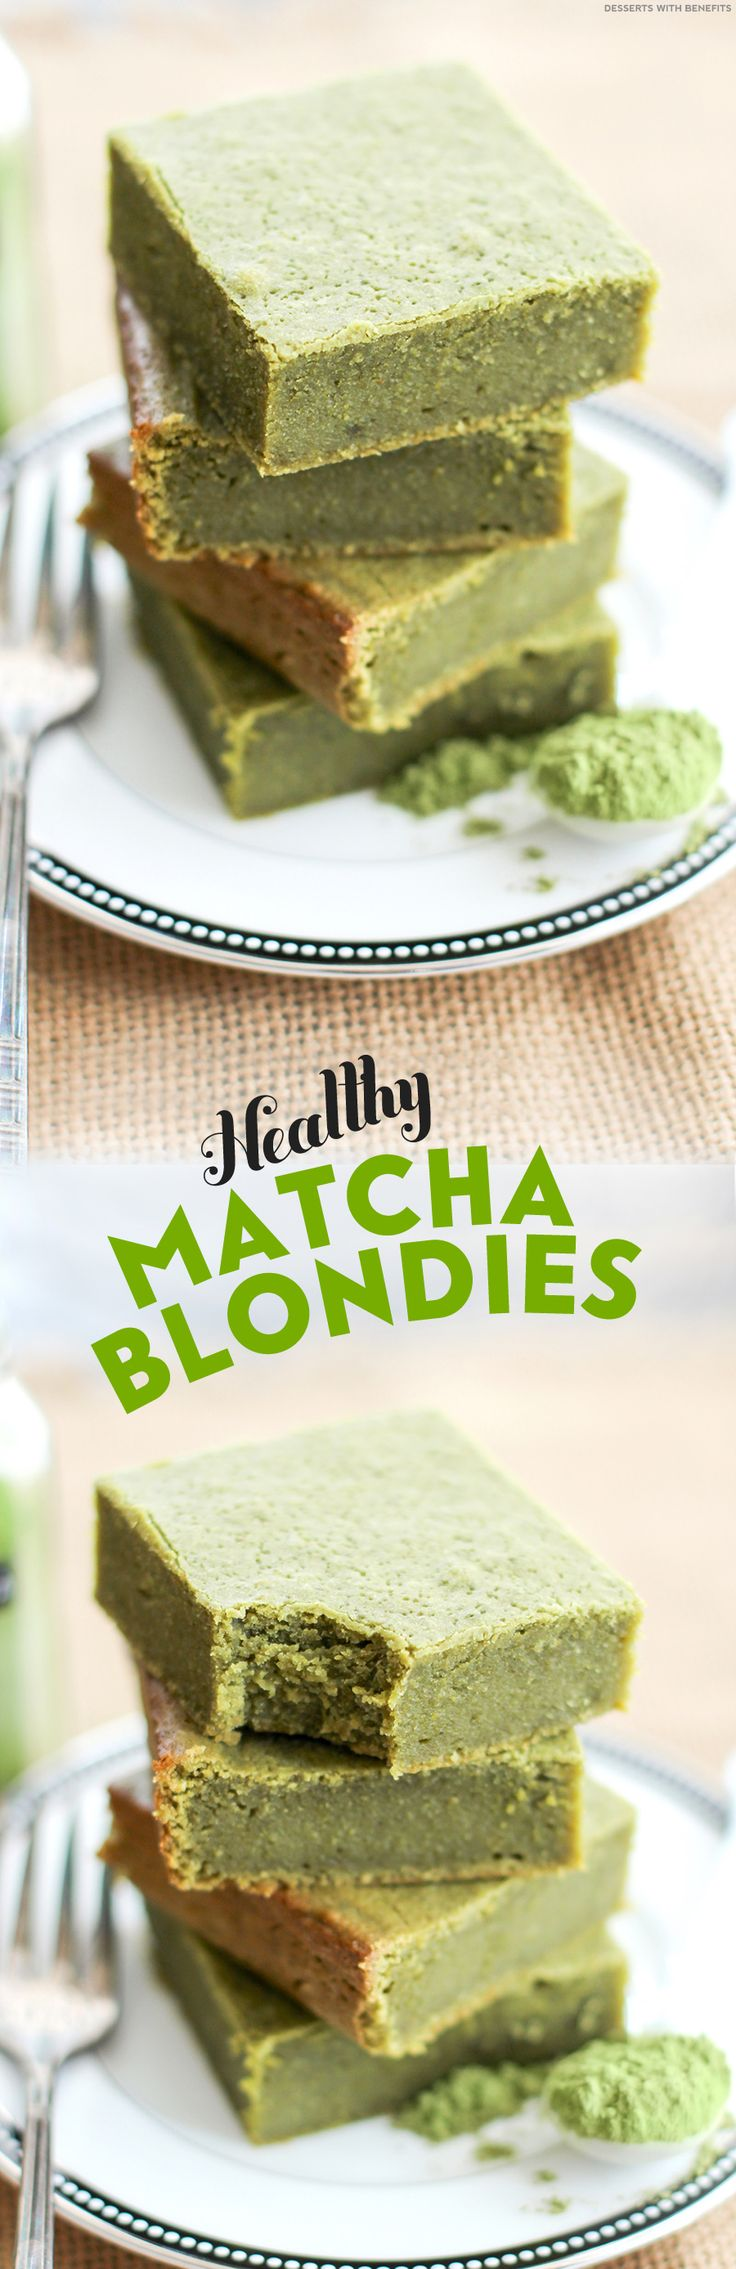 Healthy Matcha Green Tea Blondies (sugar free, high fiber, gluten free, vegan) - Healthy Dessert Recipes at Desserts with Benefits